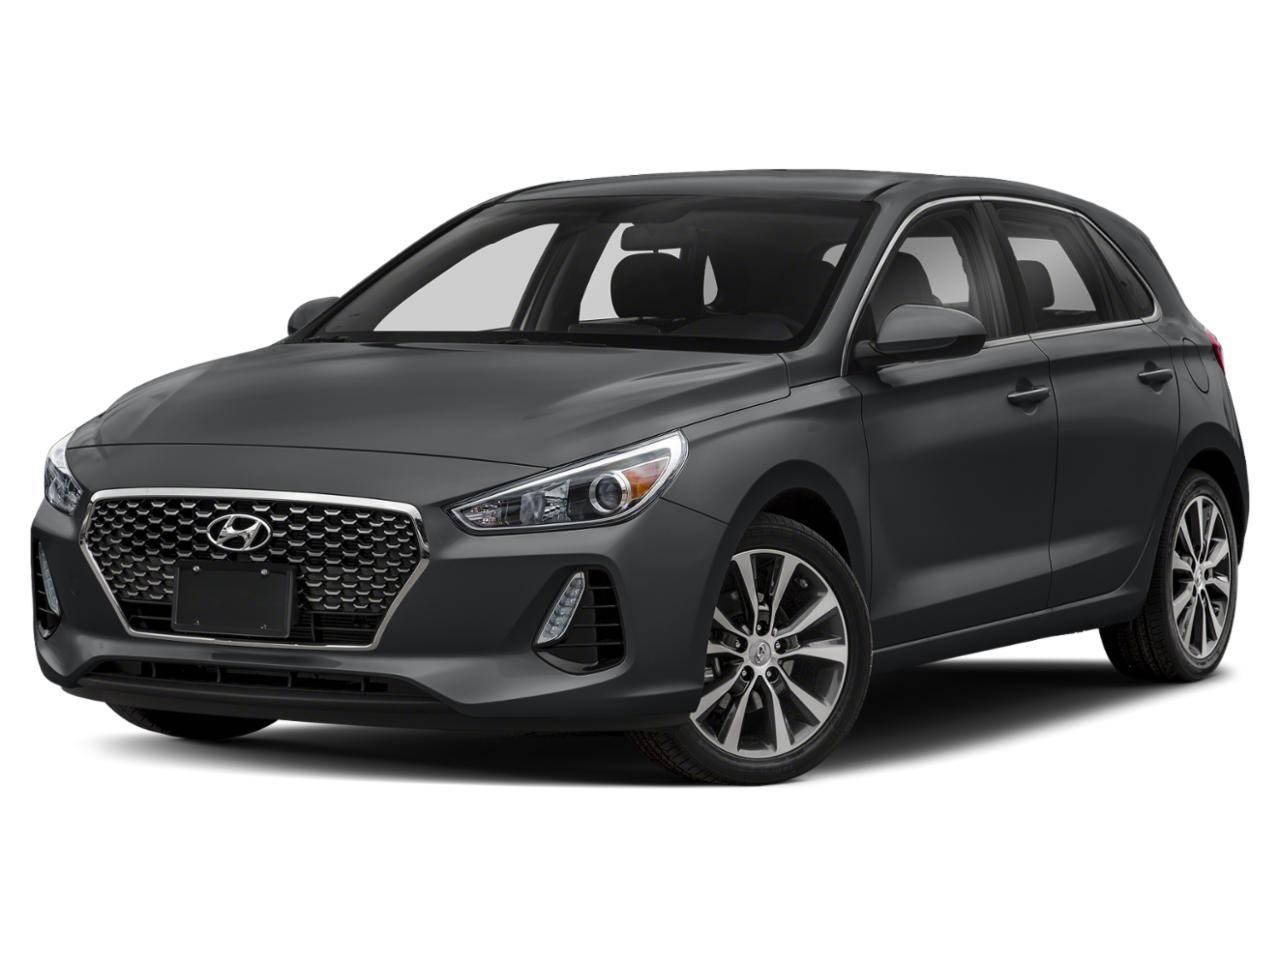 2018 Hyundai Elantra GT Vehicle Photo in Nashua, NH 03060